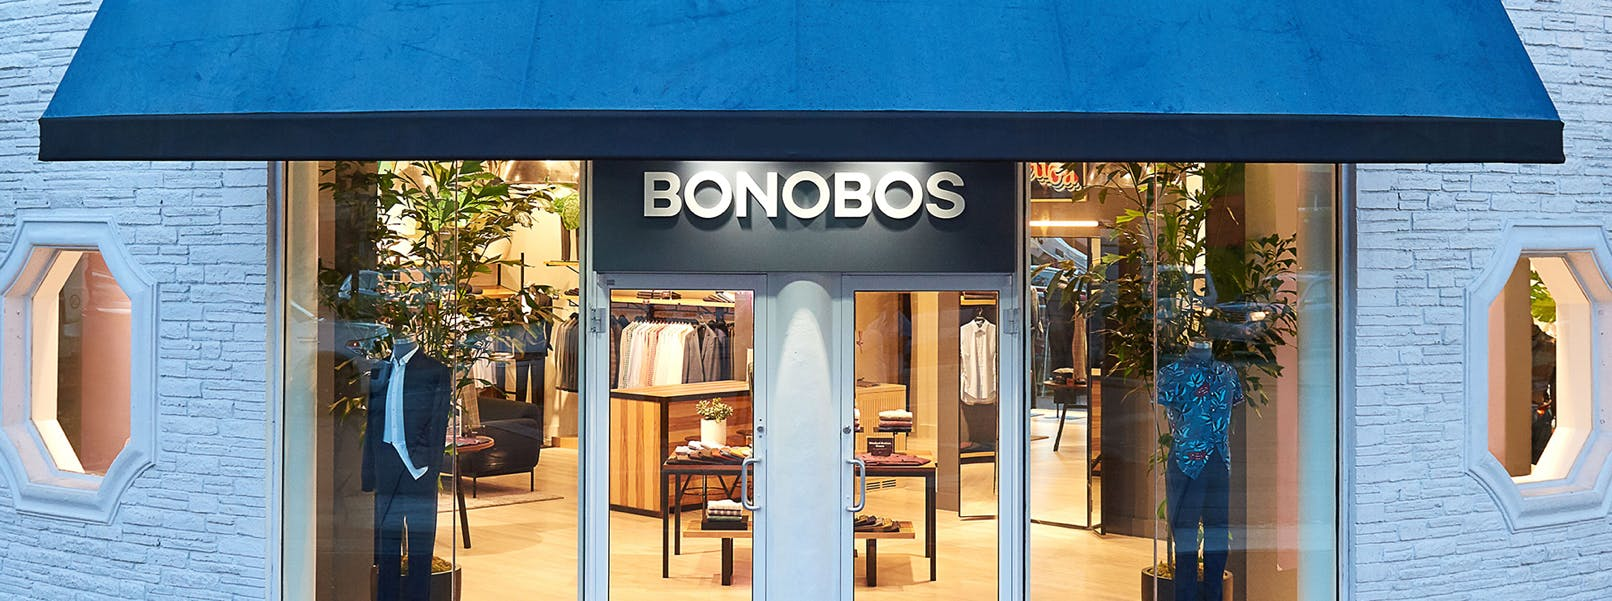 Entrance of Bonobos guideshop